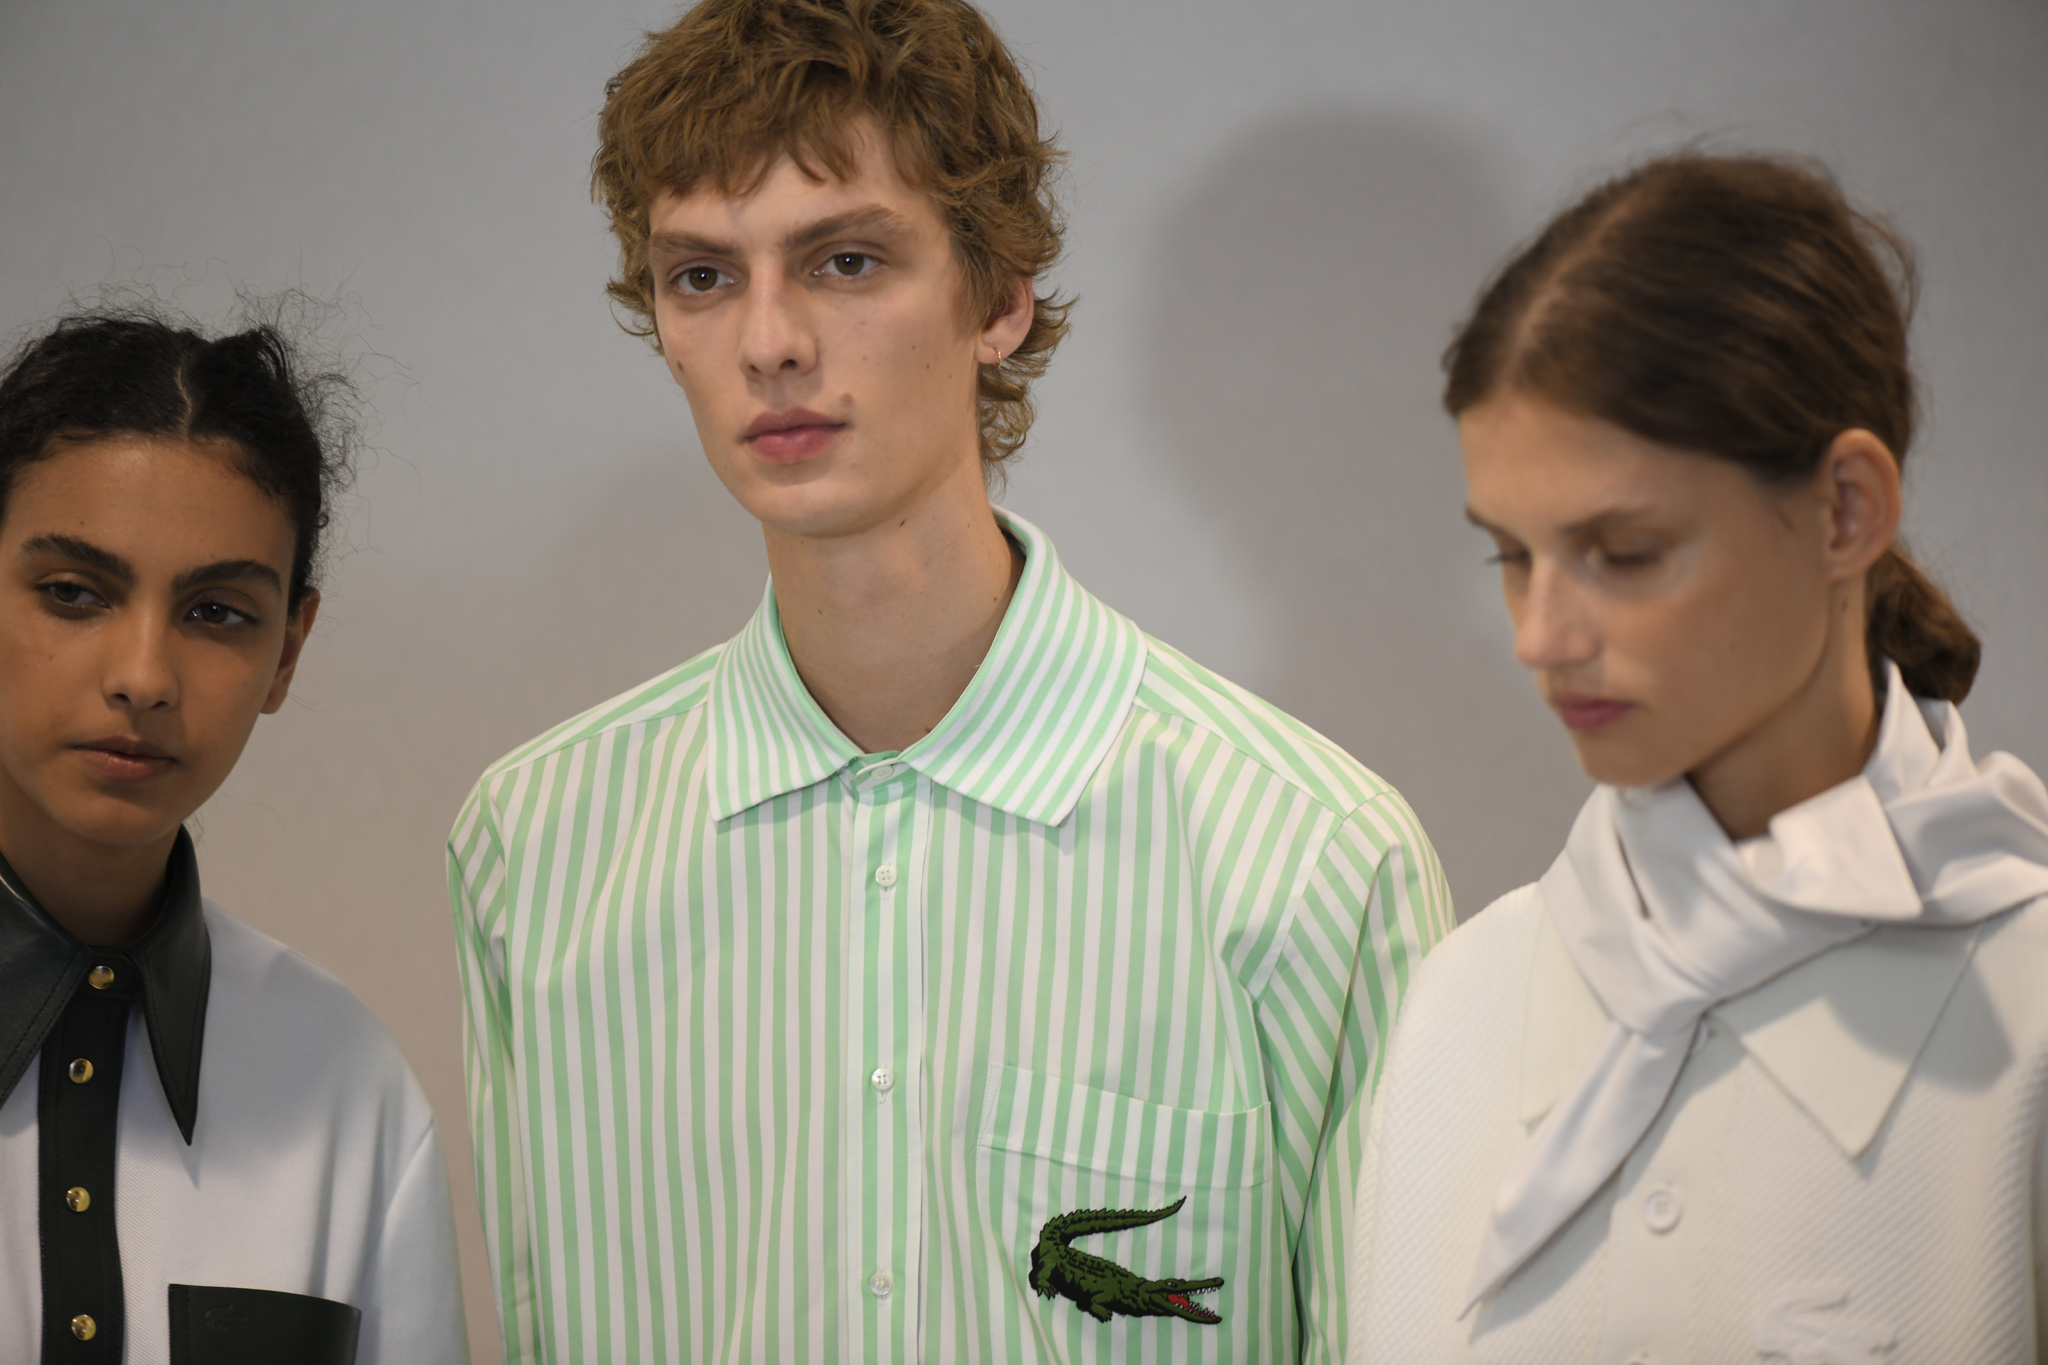 Backstage at Lacoste RTW Spring 2020